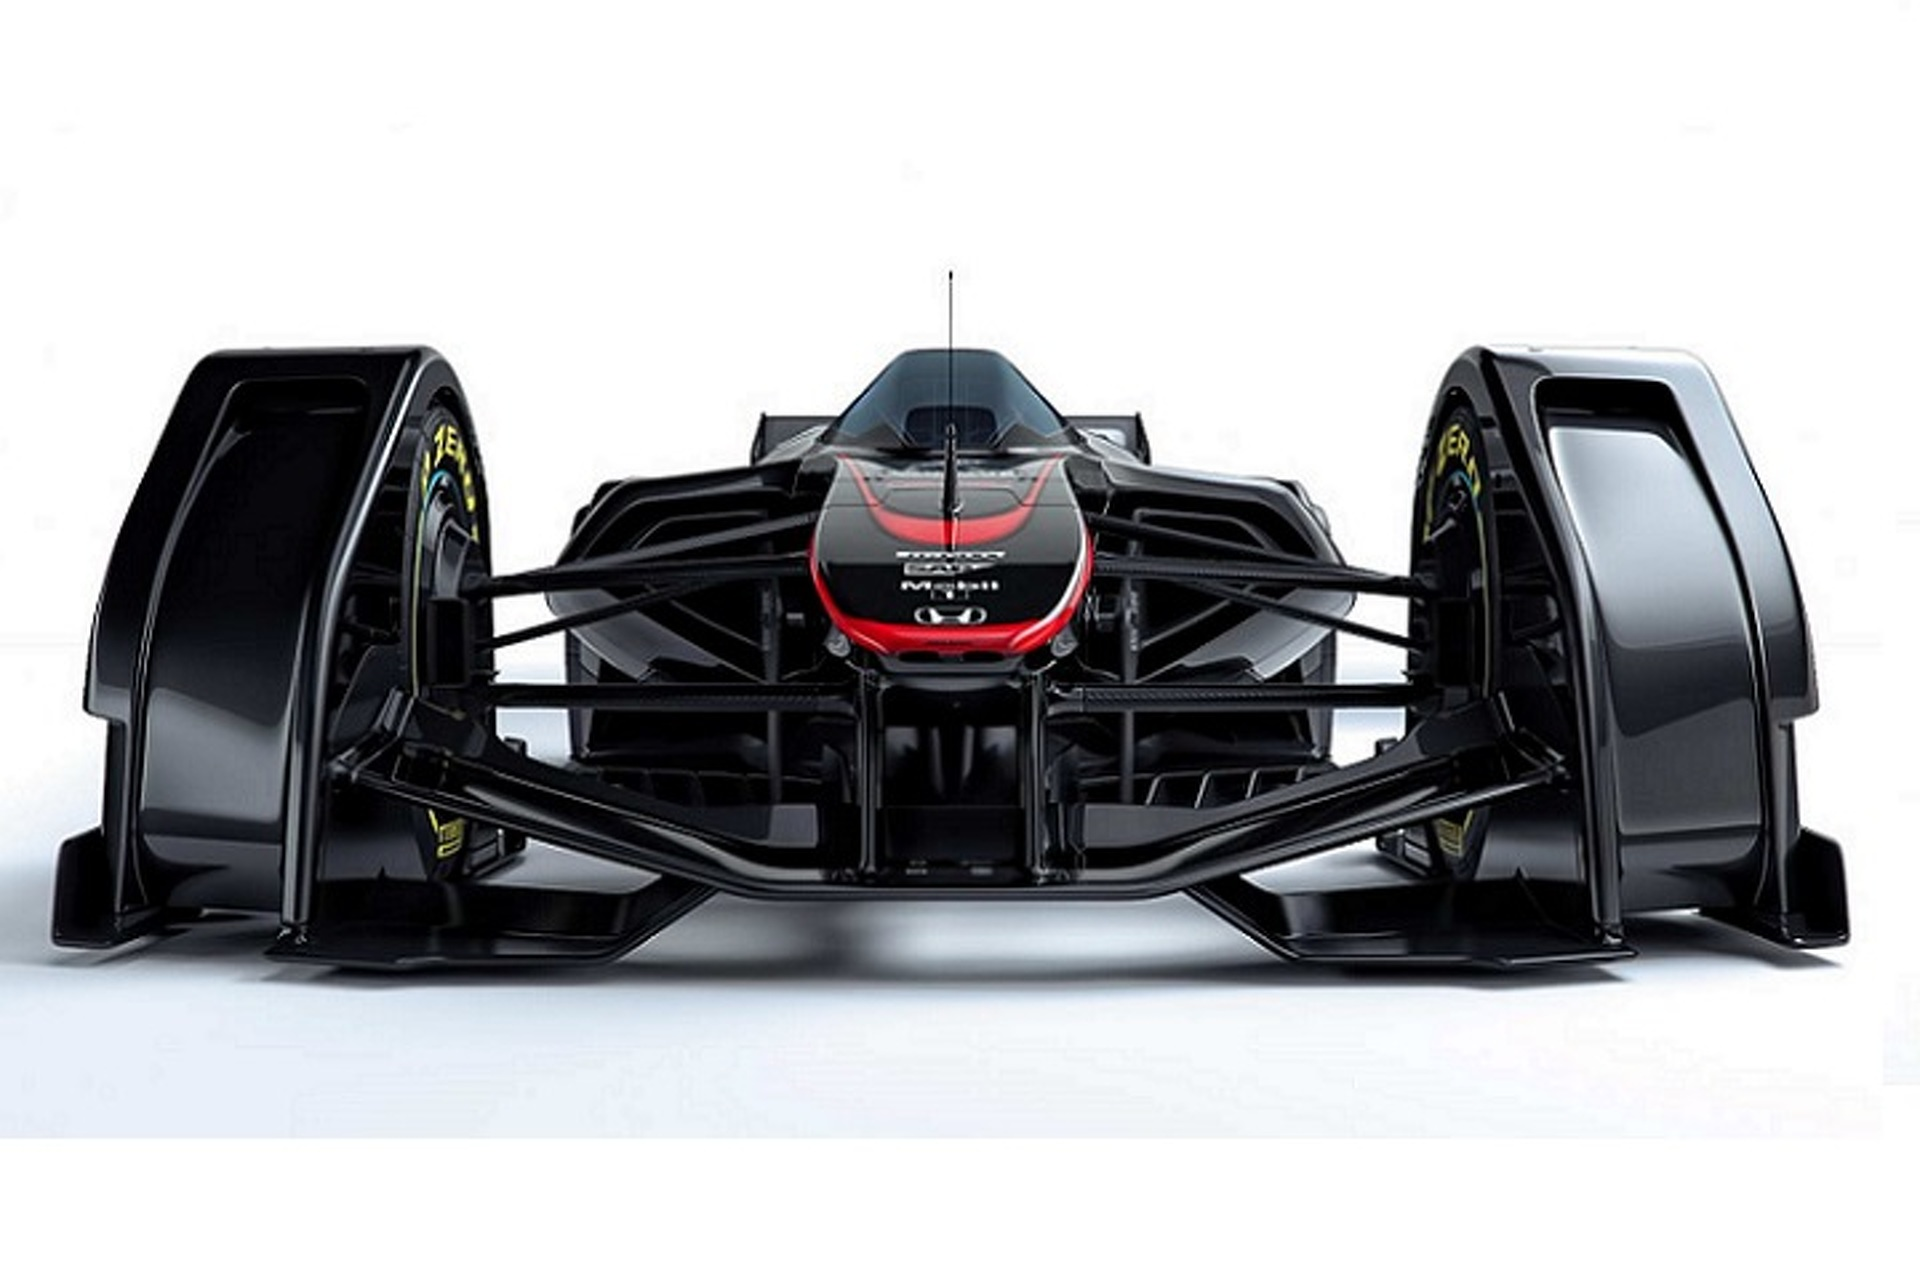 McLaren MP4-X Is a Formula 1 Car From the Future